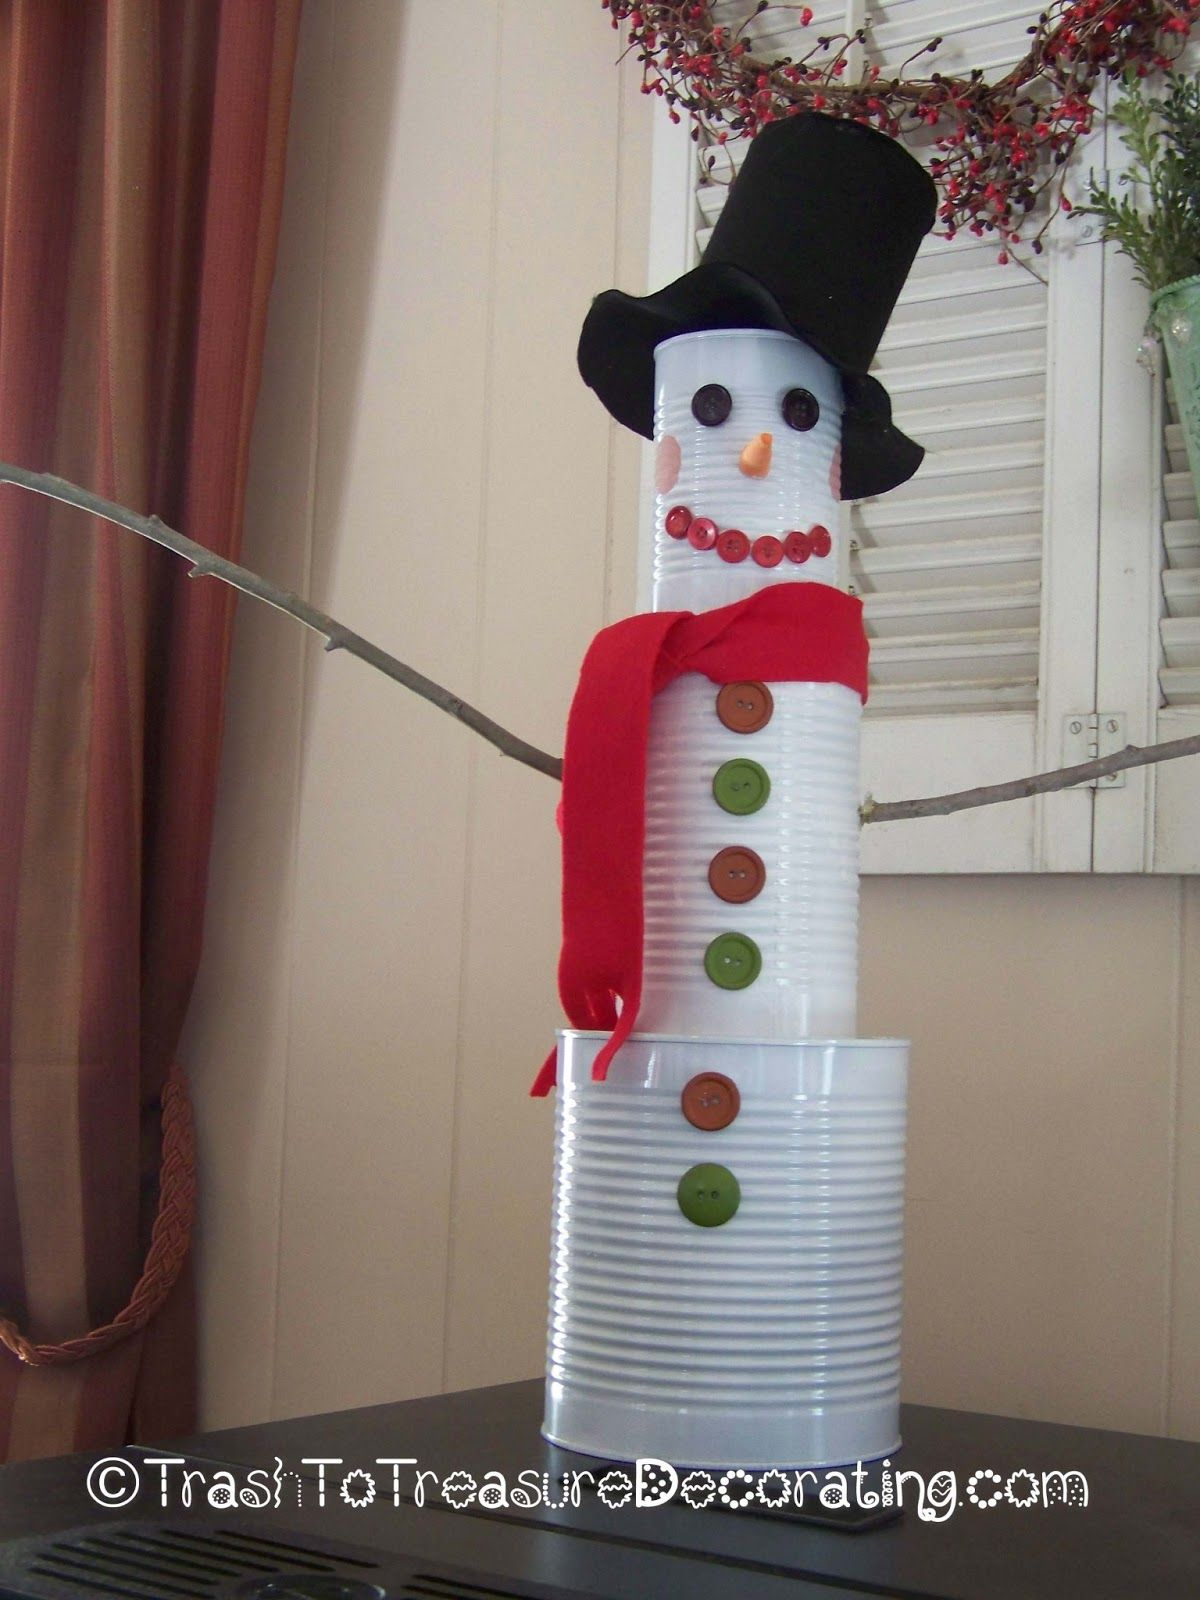 Trash to Treasure Decorating Upcycled Tin Can Snowman that Melts Your Heart & Trash to Treasure Decorating: Upcycled Tin Can Snowman that Melts ...